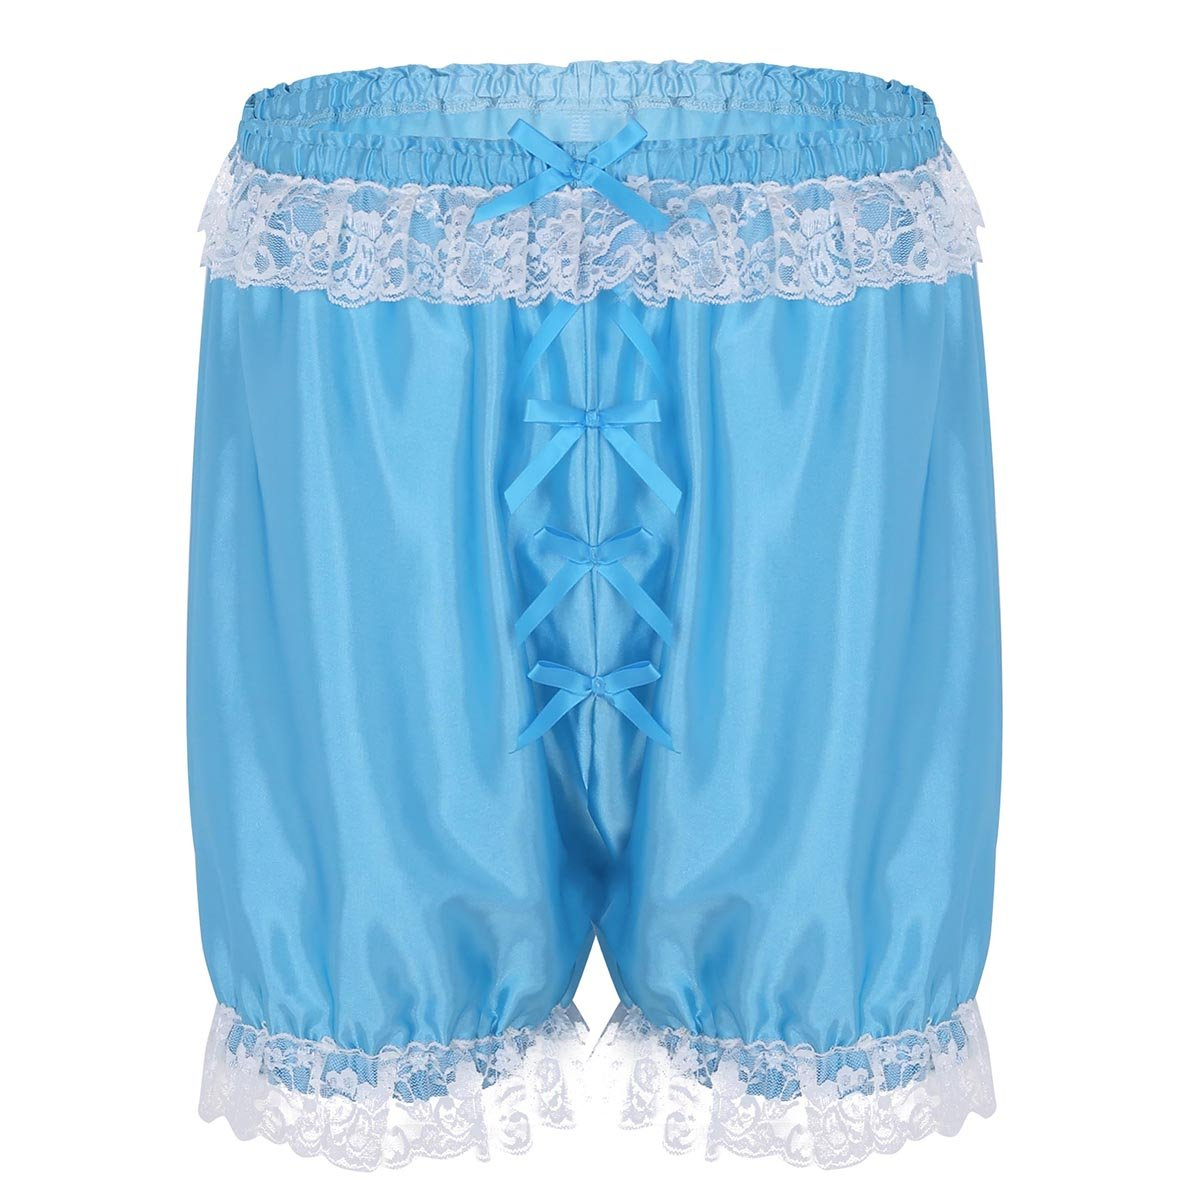 iEFiEL Mens Soft Stretchy Satin Effect Sissy Bloomers Knickers Panties Lace Sleep Boxer Briefs Shorts Pants